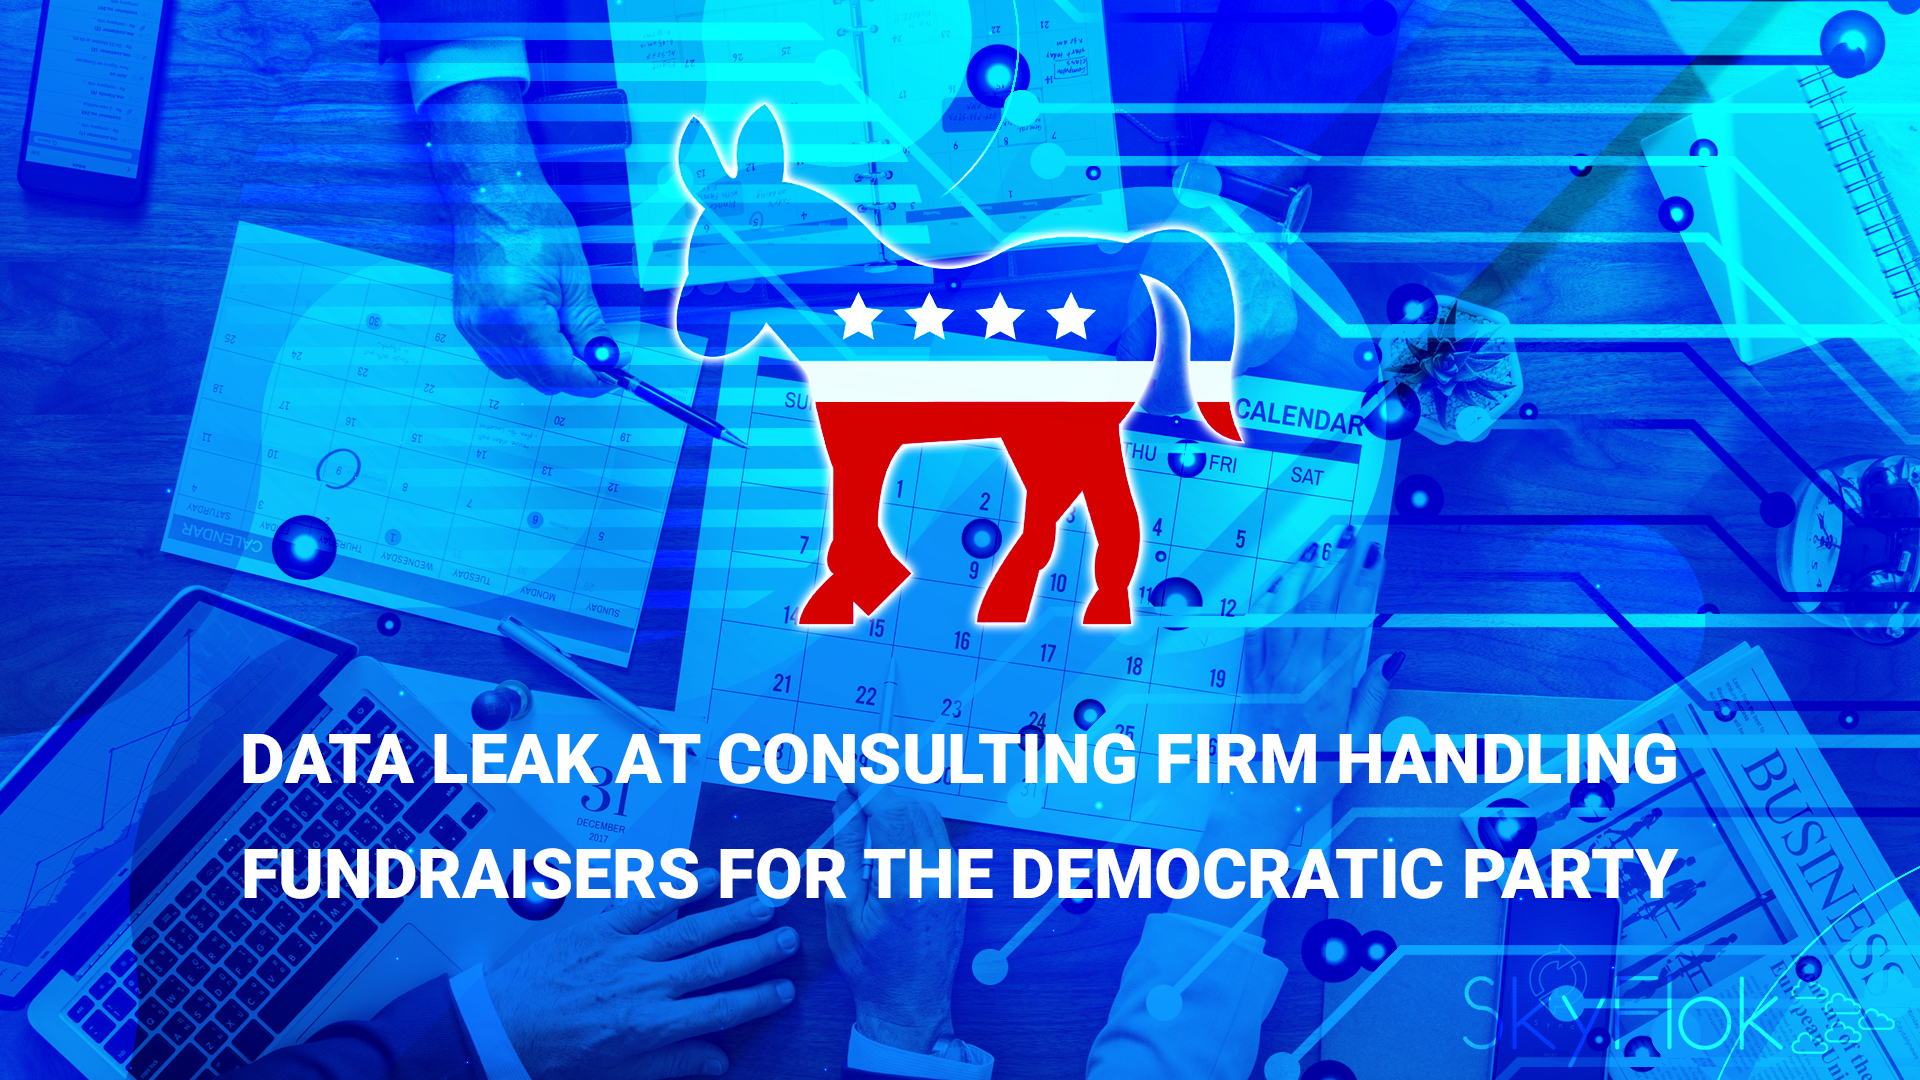 Data leak at consulting firm handling fundraisers for the Democratic party